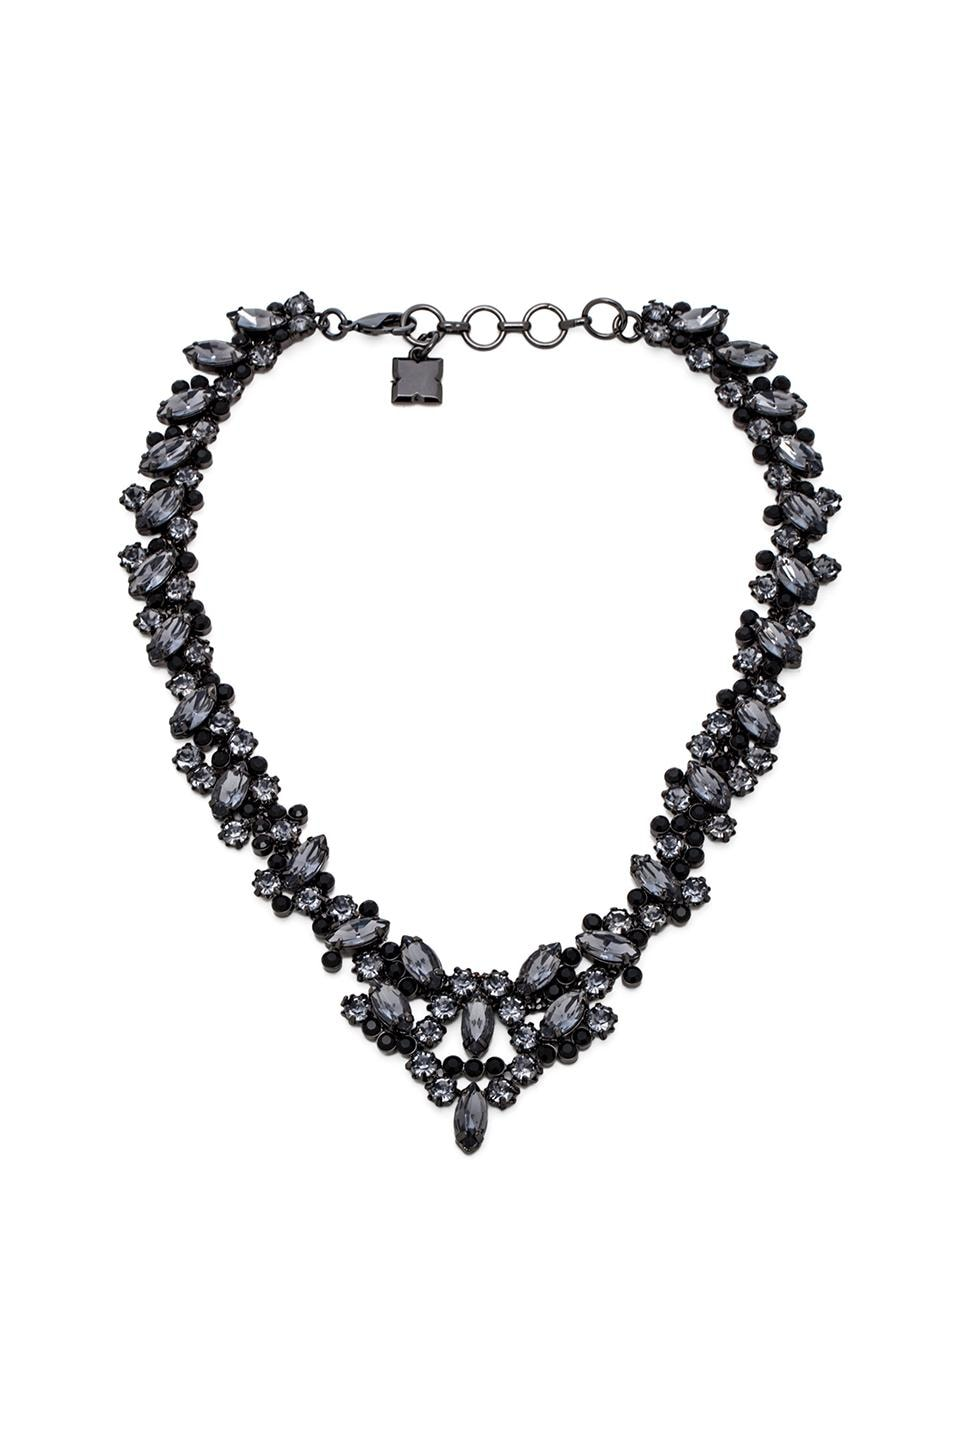 BCBGMAXAZRIA Scattered Stone Necklace in Black Diamond Combo